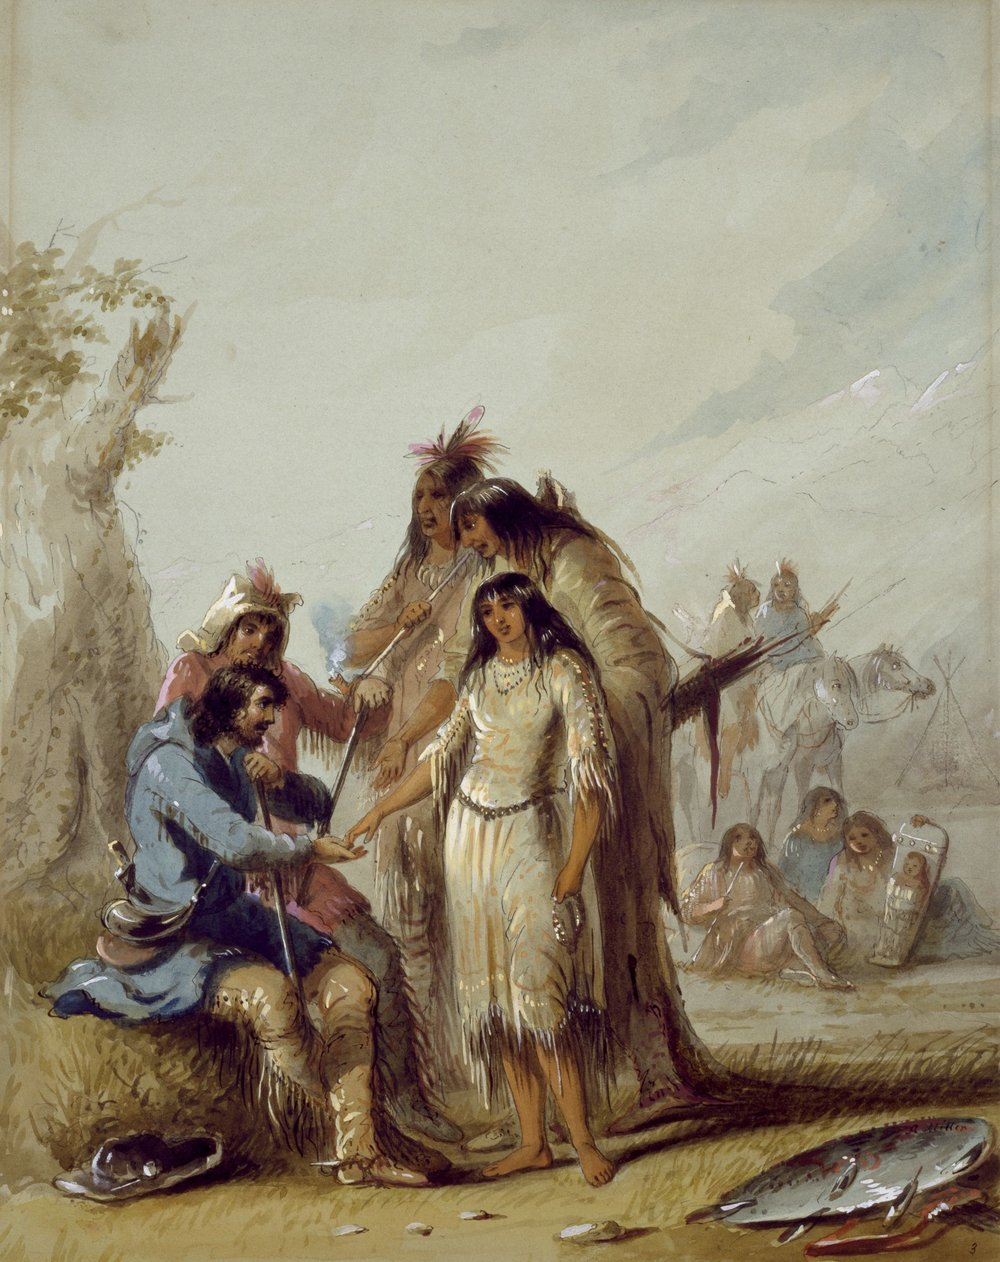 The Trapper's Bride